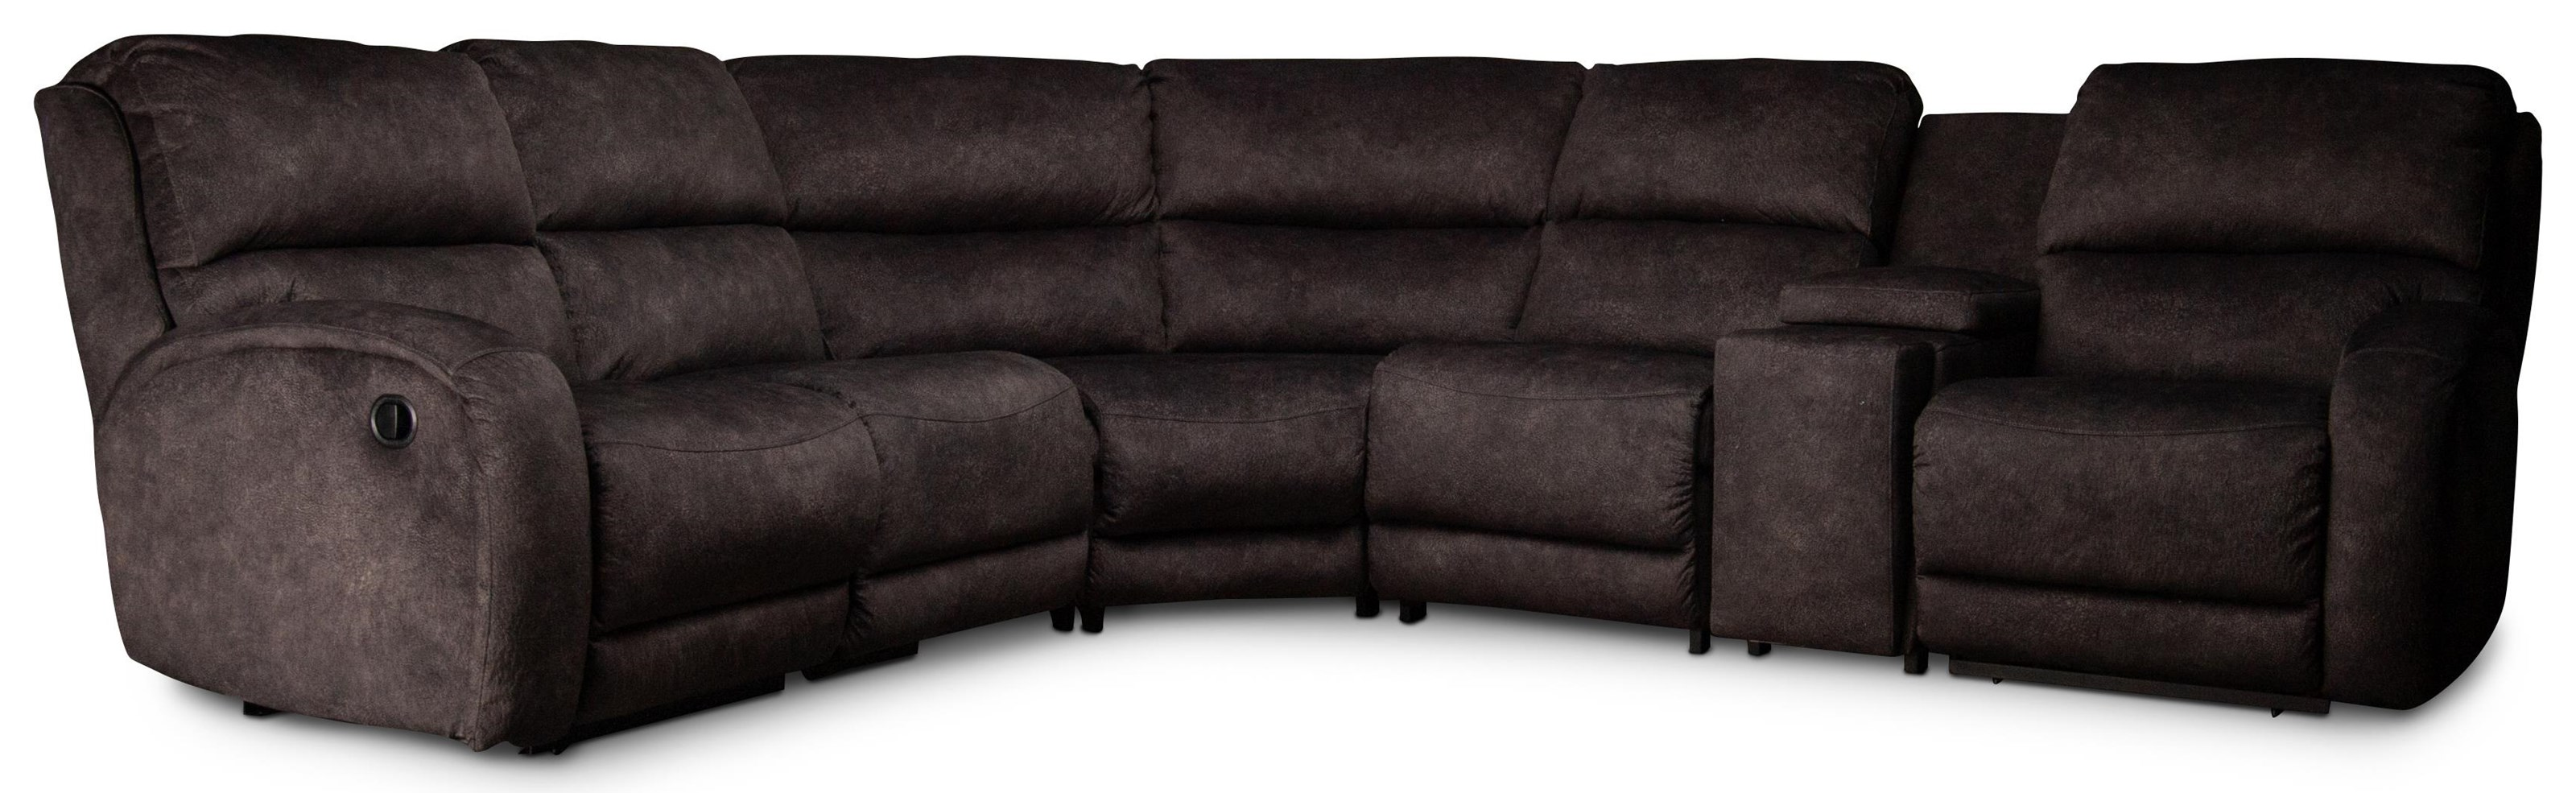 Dorian Dorian Sectional Sofa by Southern Motion at Morris Home